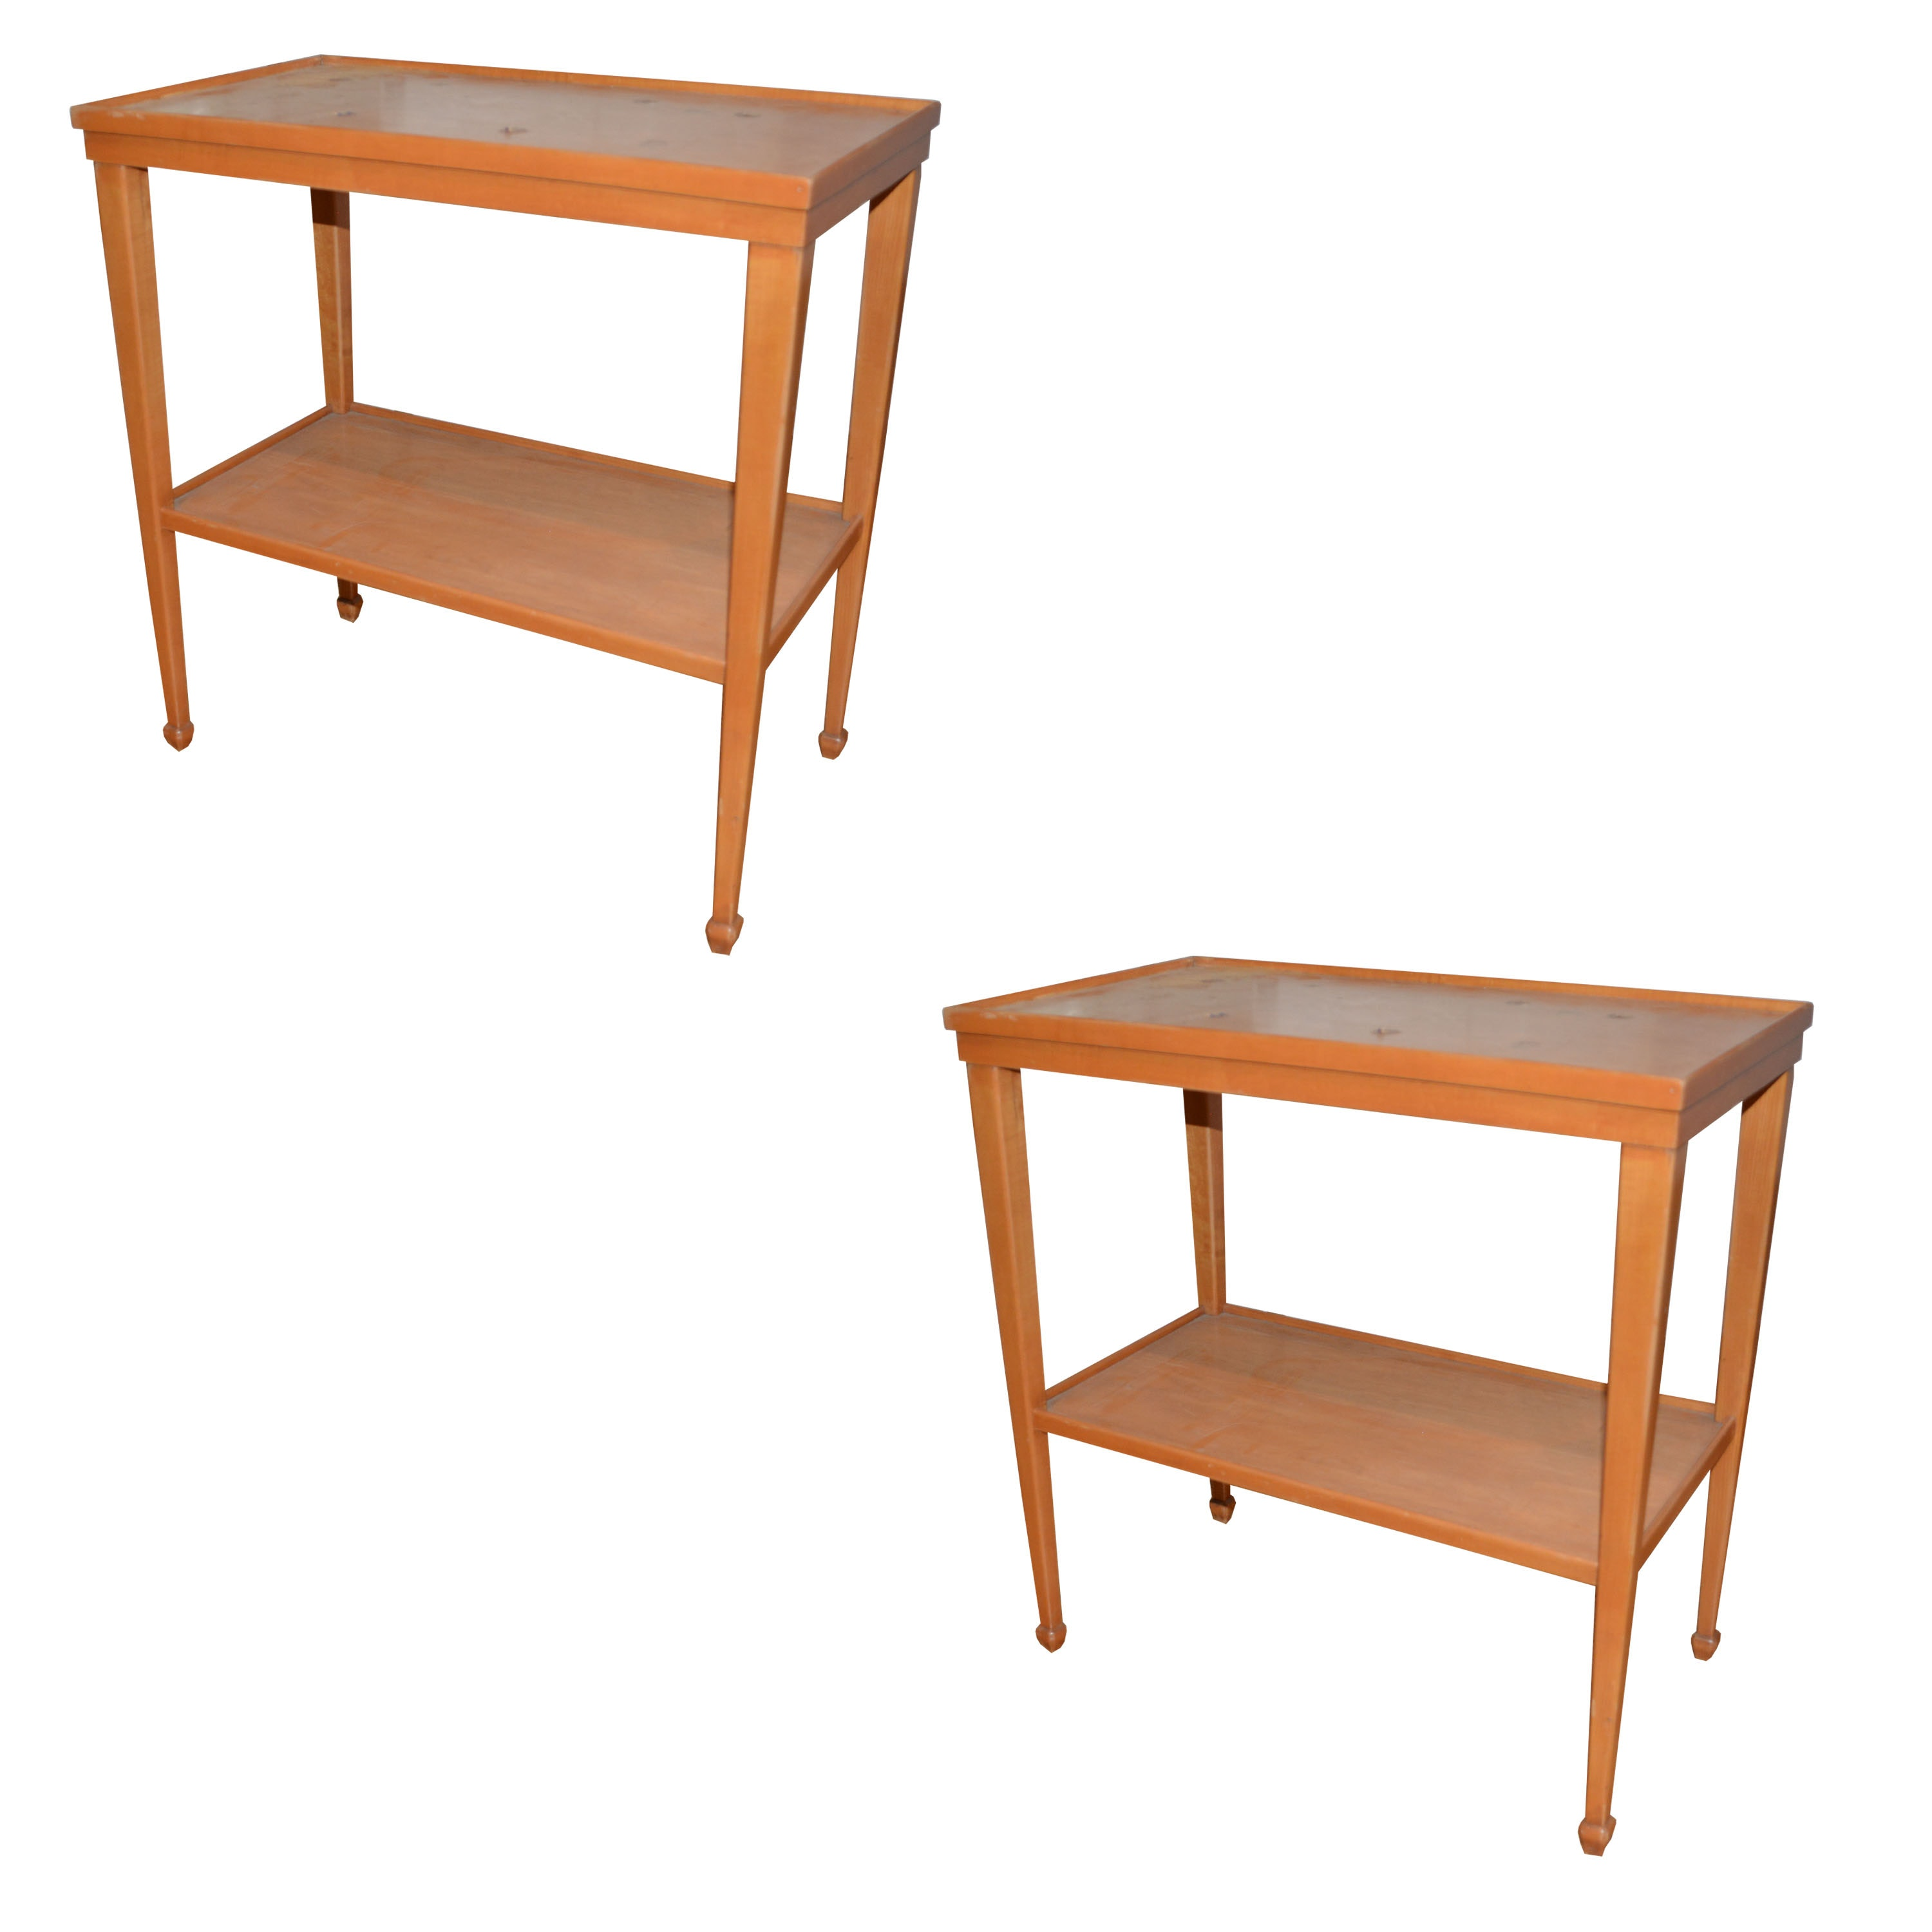 Pair of Mid-Century Side Tables by Trutype